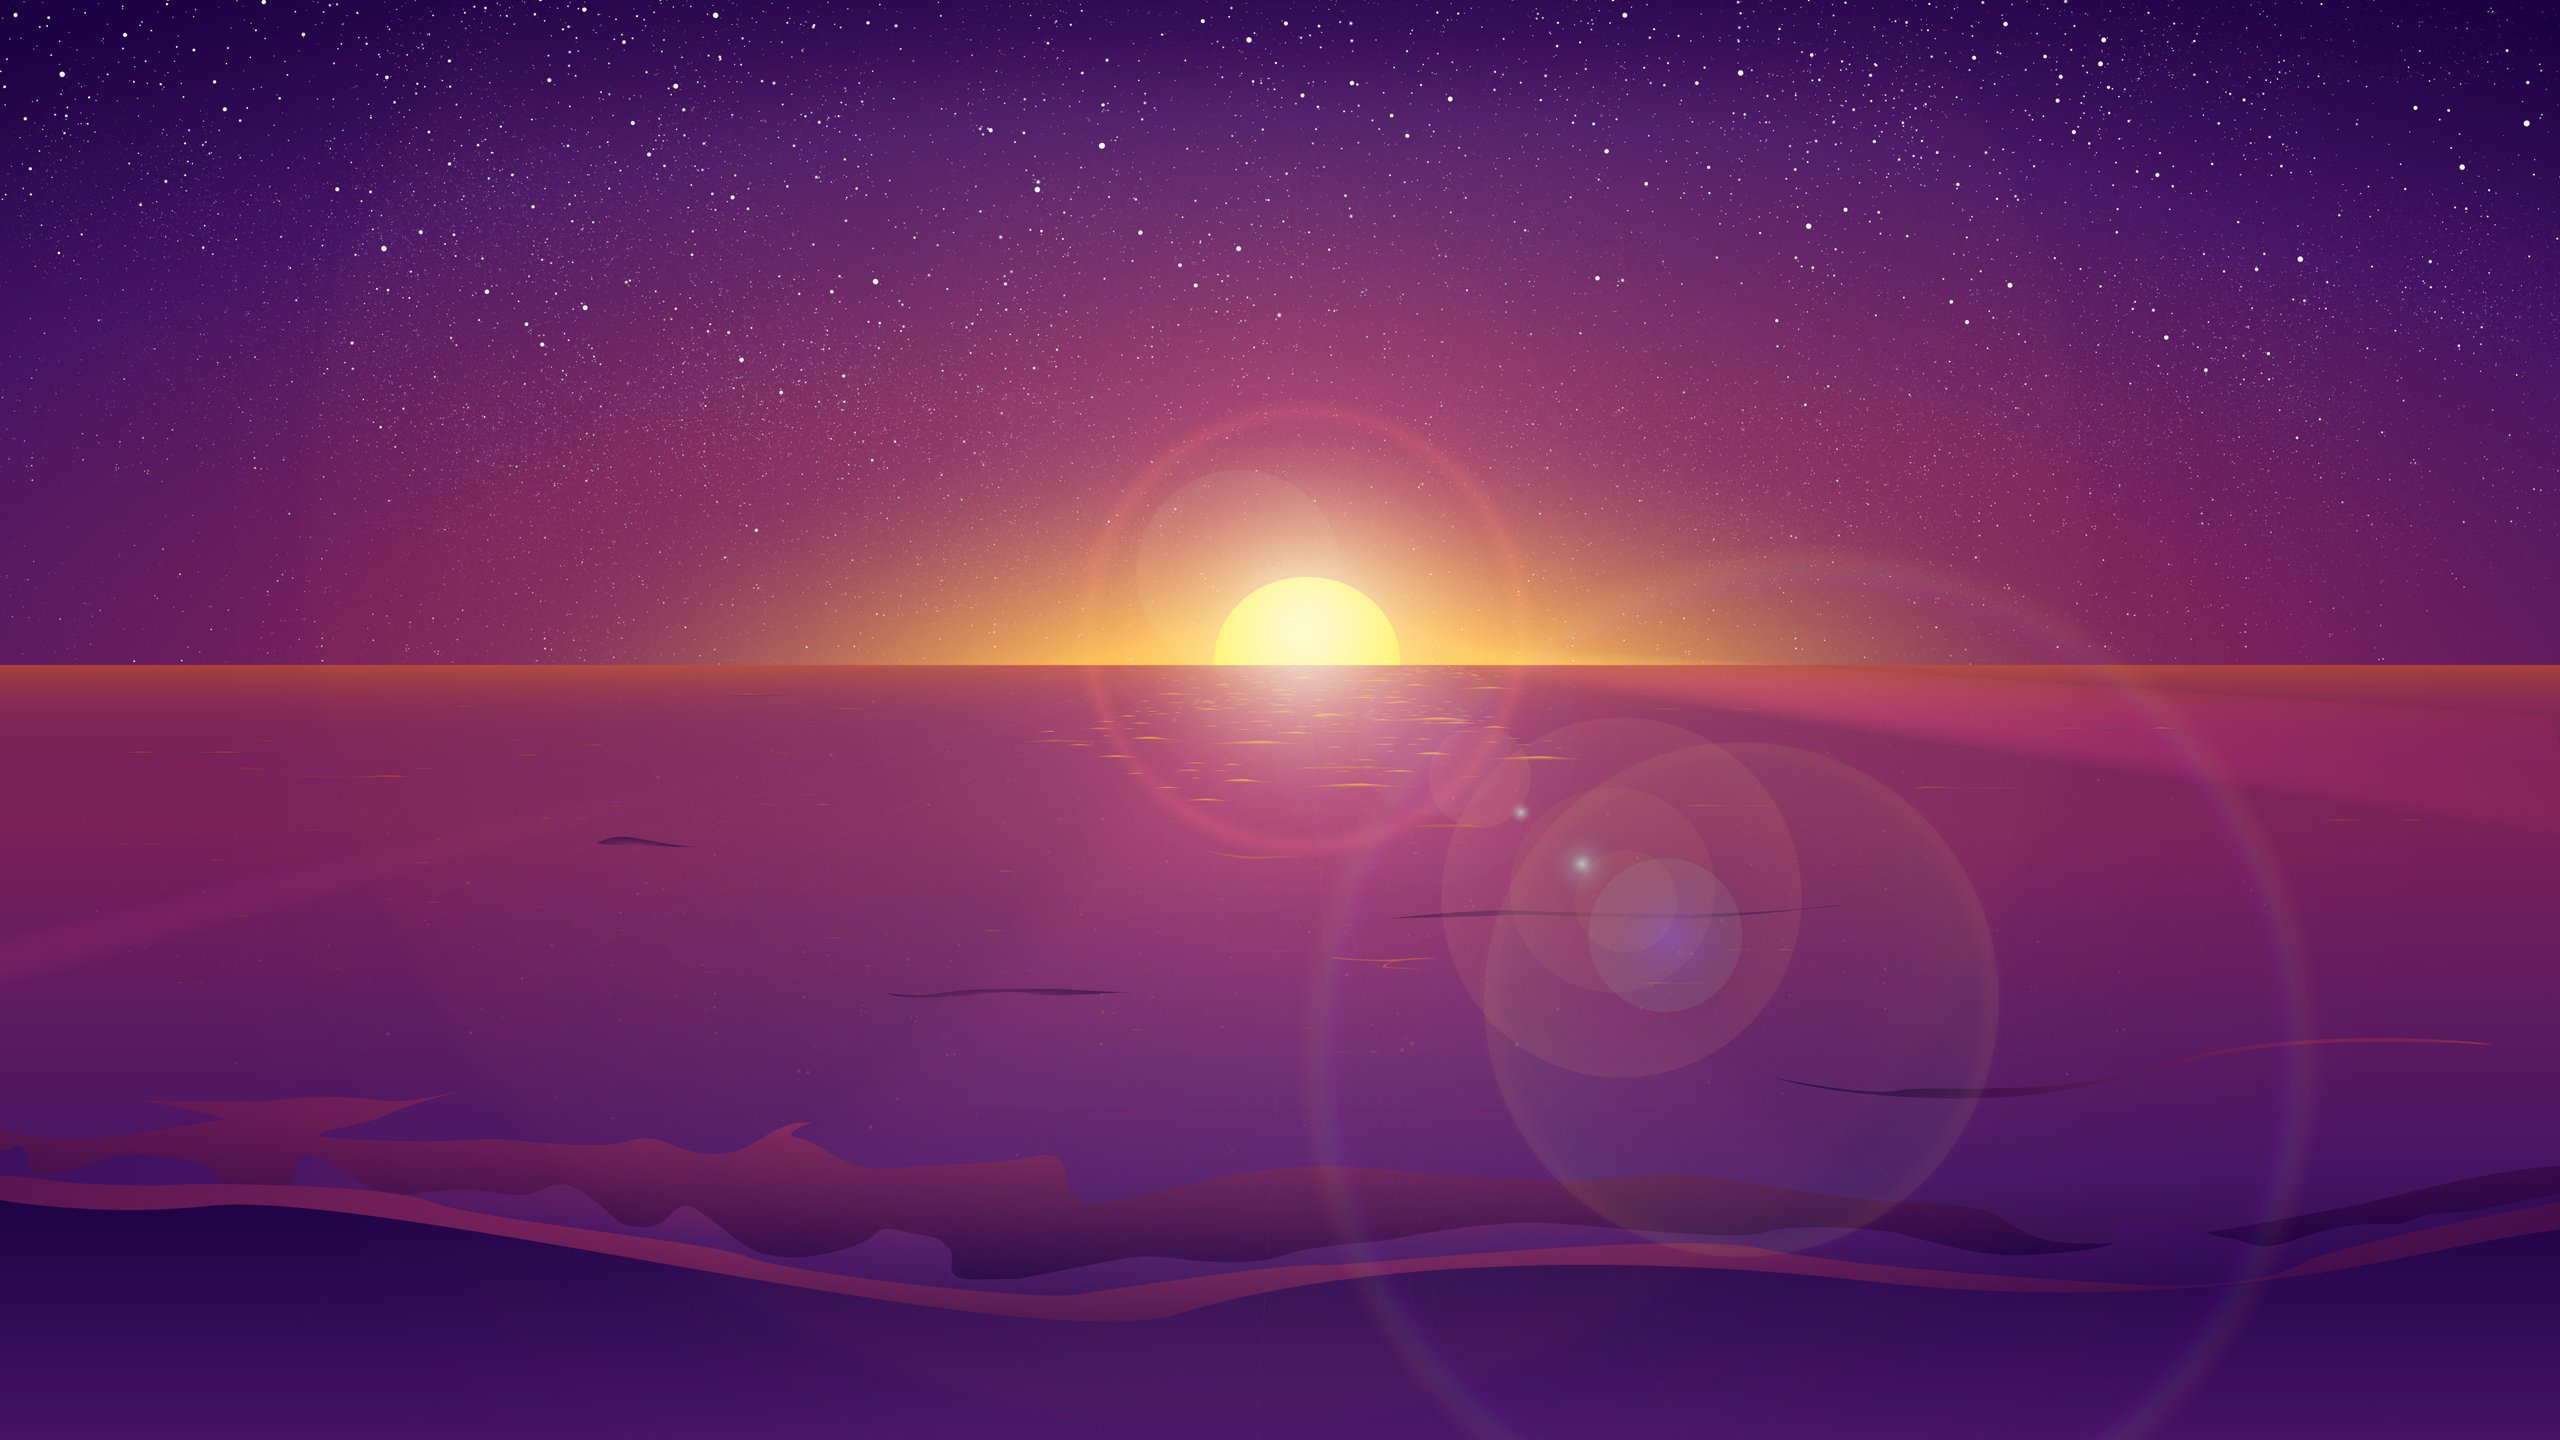 Youtube Channel Art Space 2560x1440 Calico shore 2560x1440 16x9 2560x1440